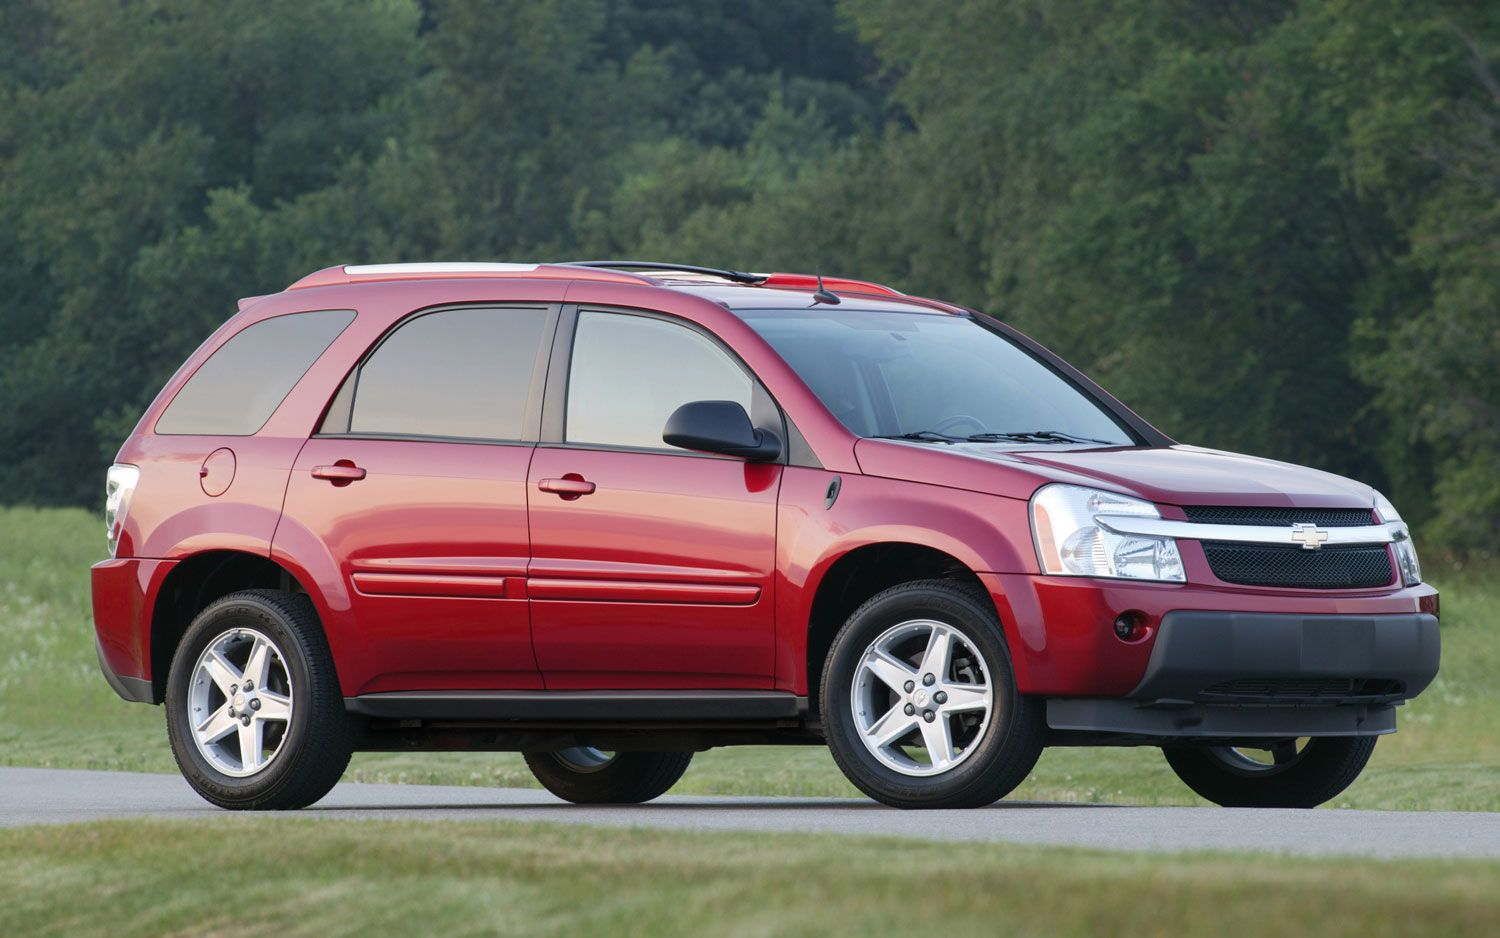 70 Used Cars Trucks Suvs In Stock In Middletown With Images